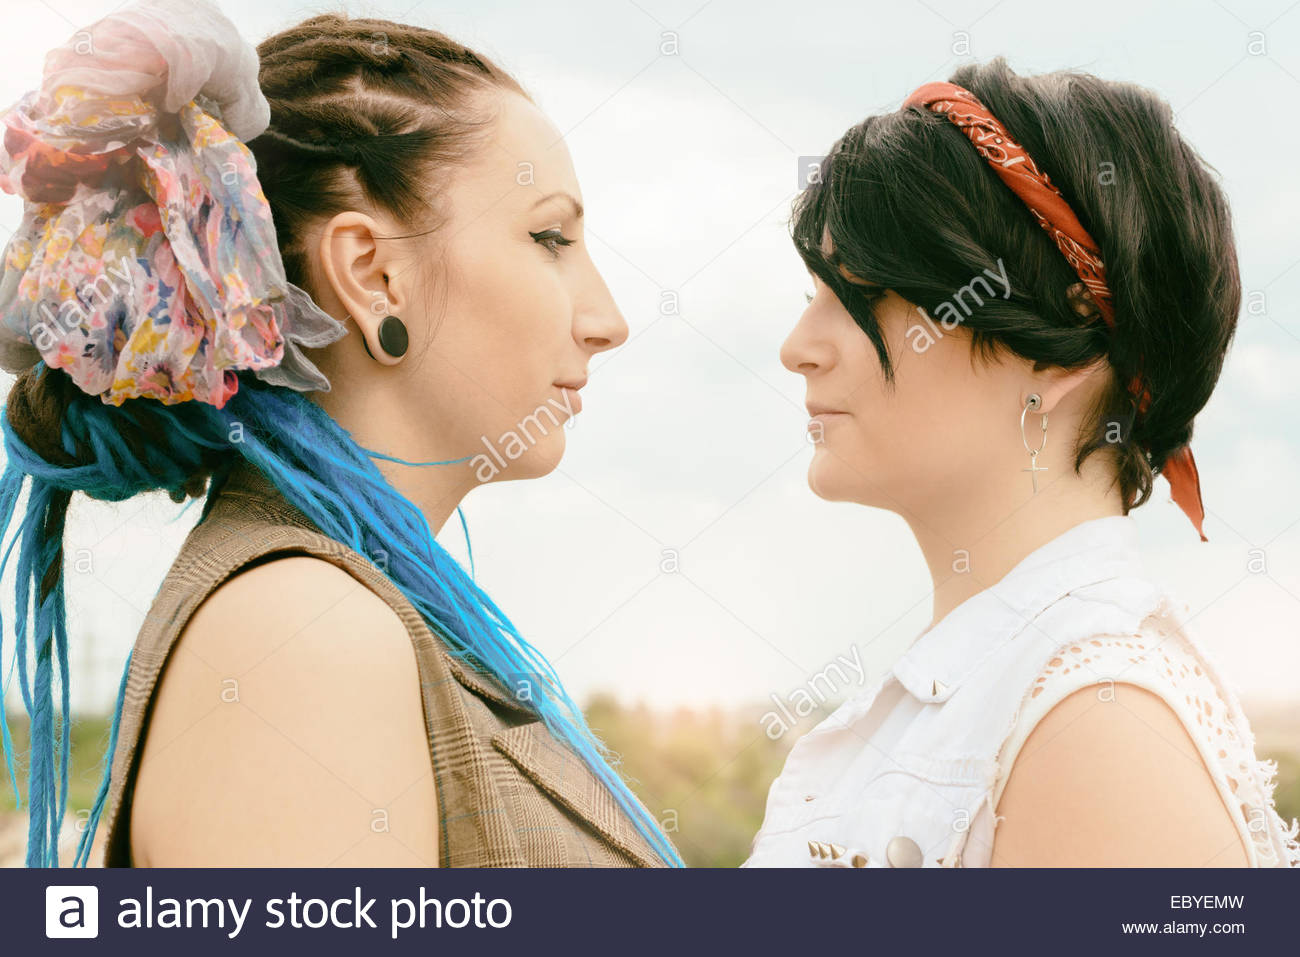 young girls of the competitor look each other in face - Stock Image